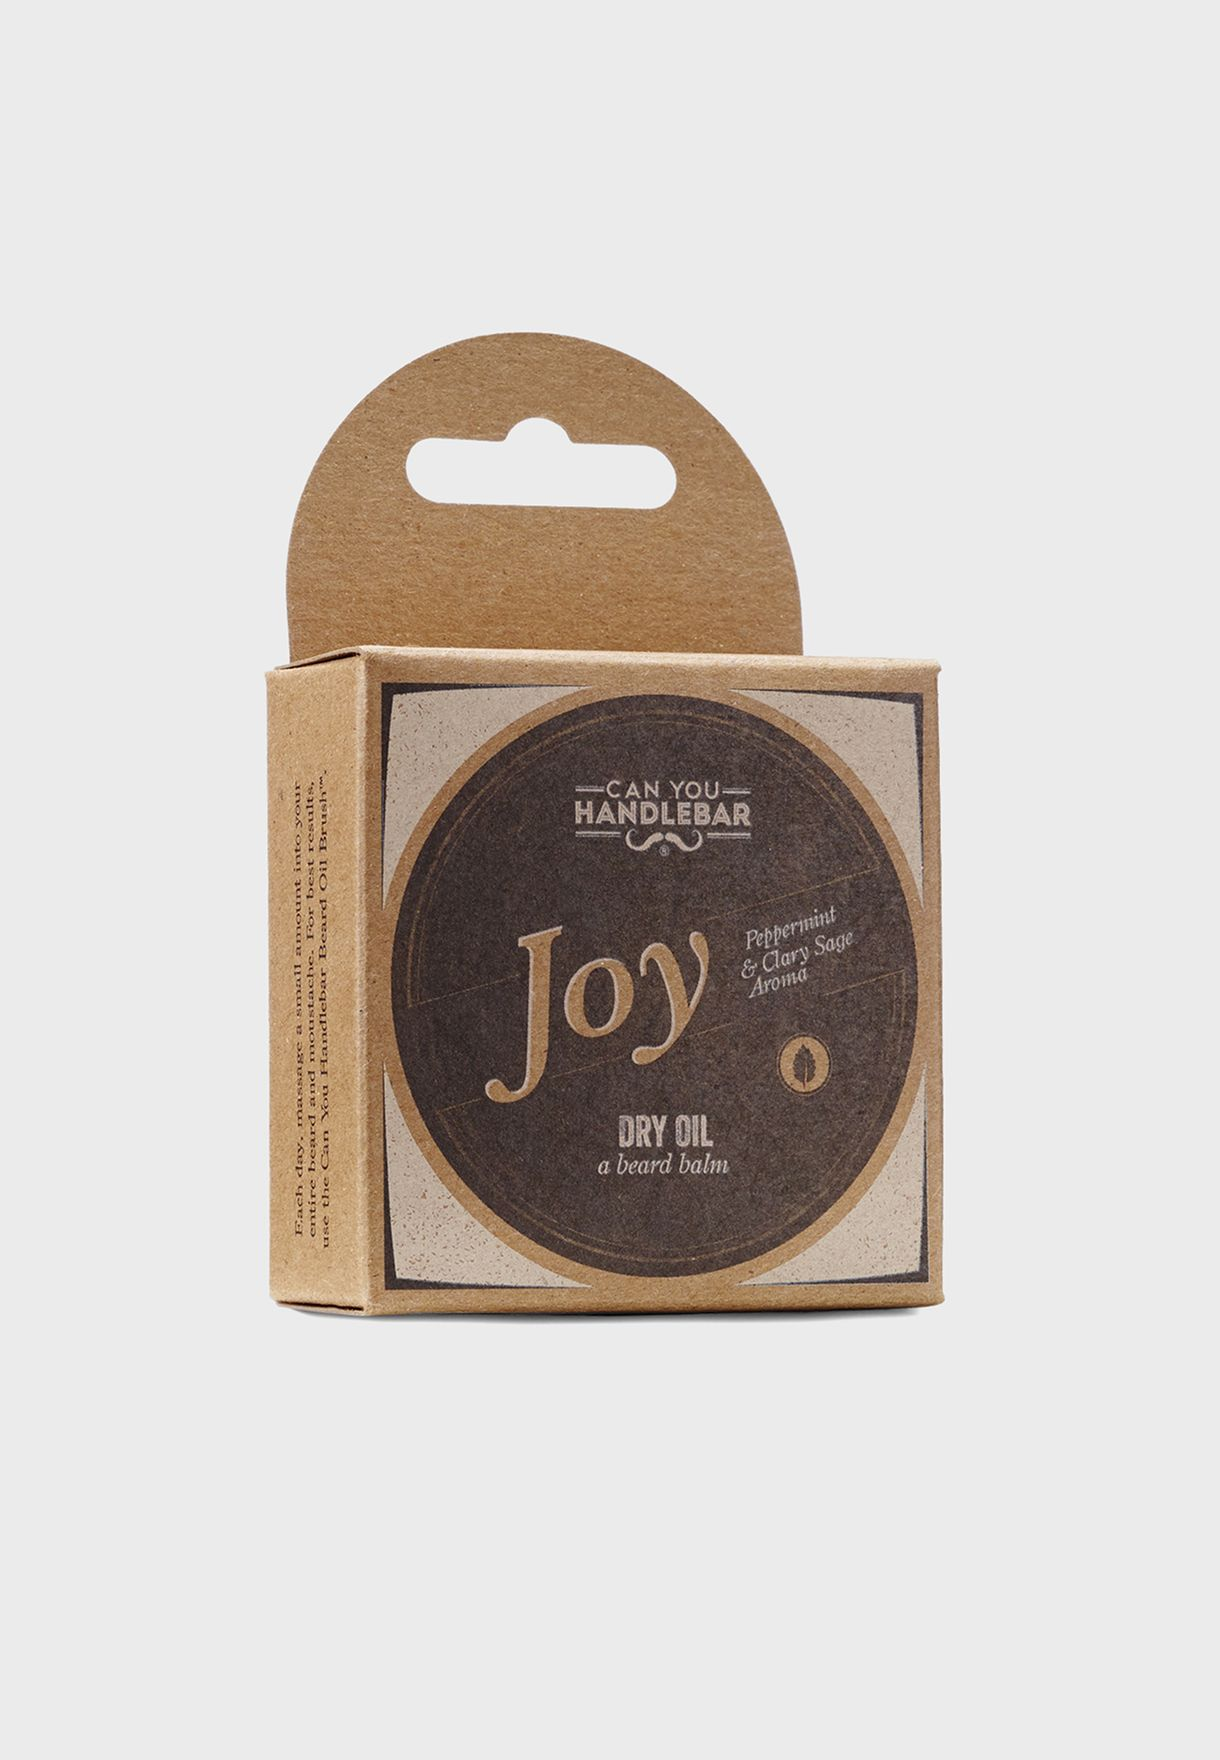 Dry Oil Beard Balm - Joy